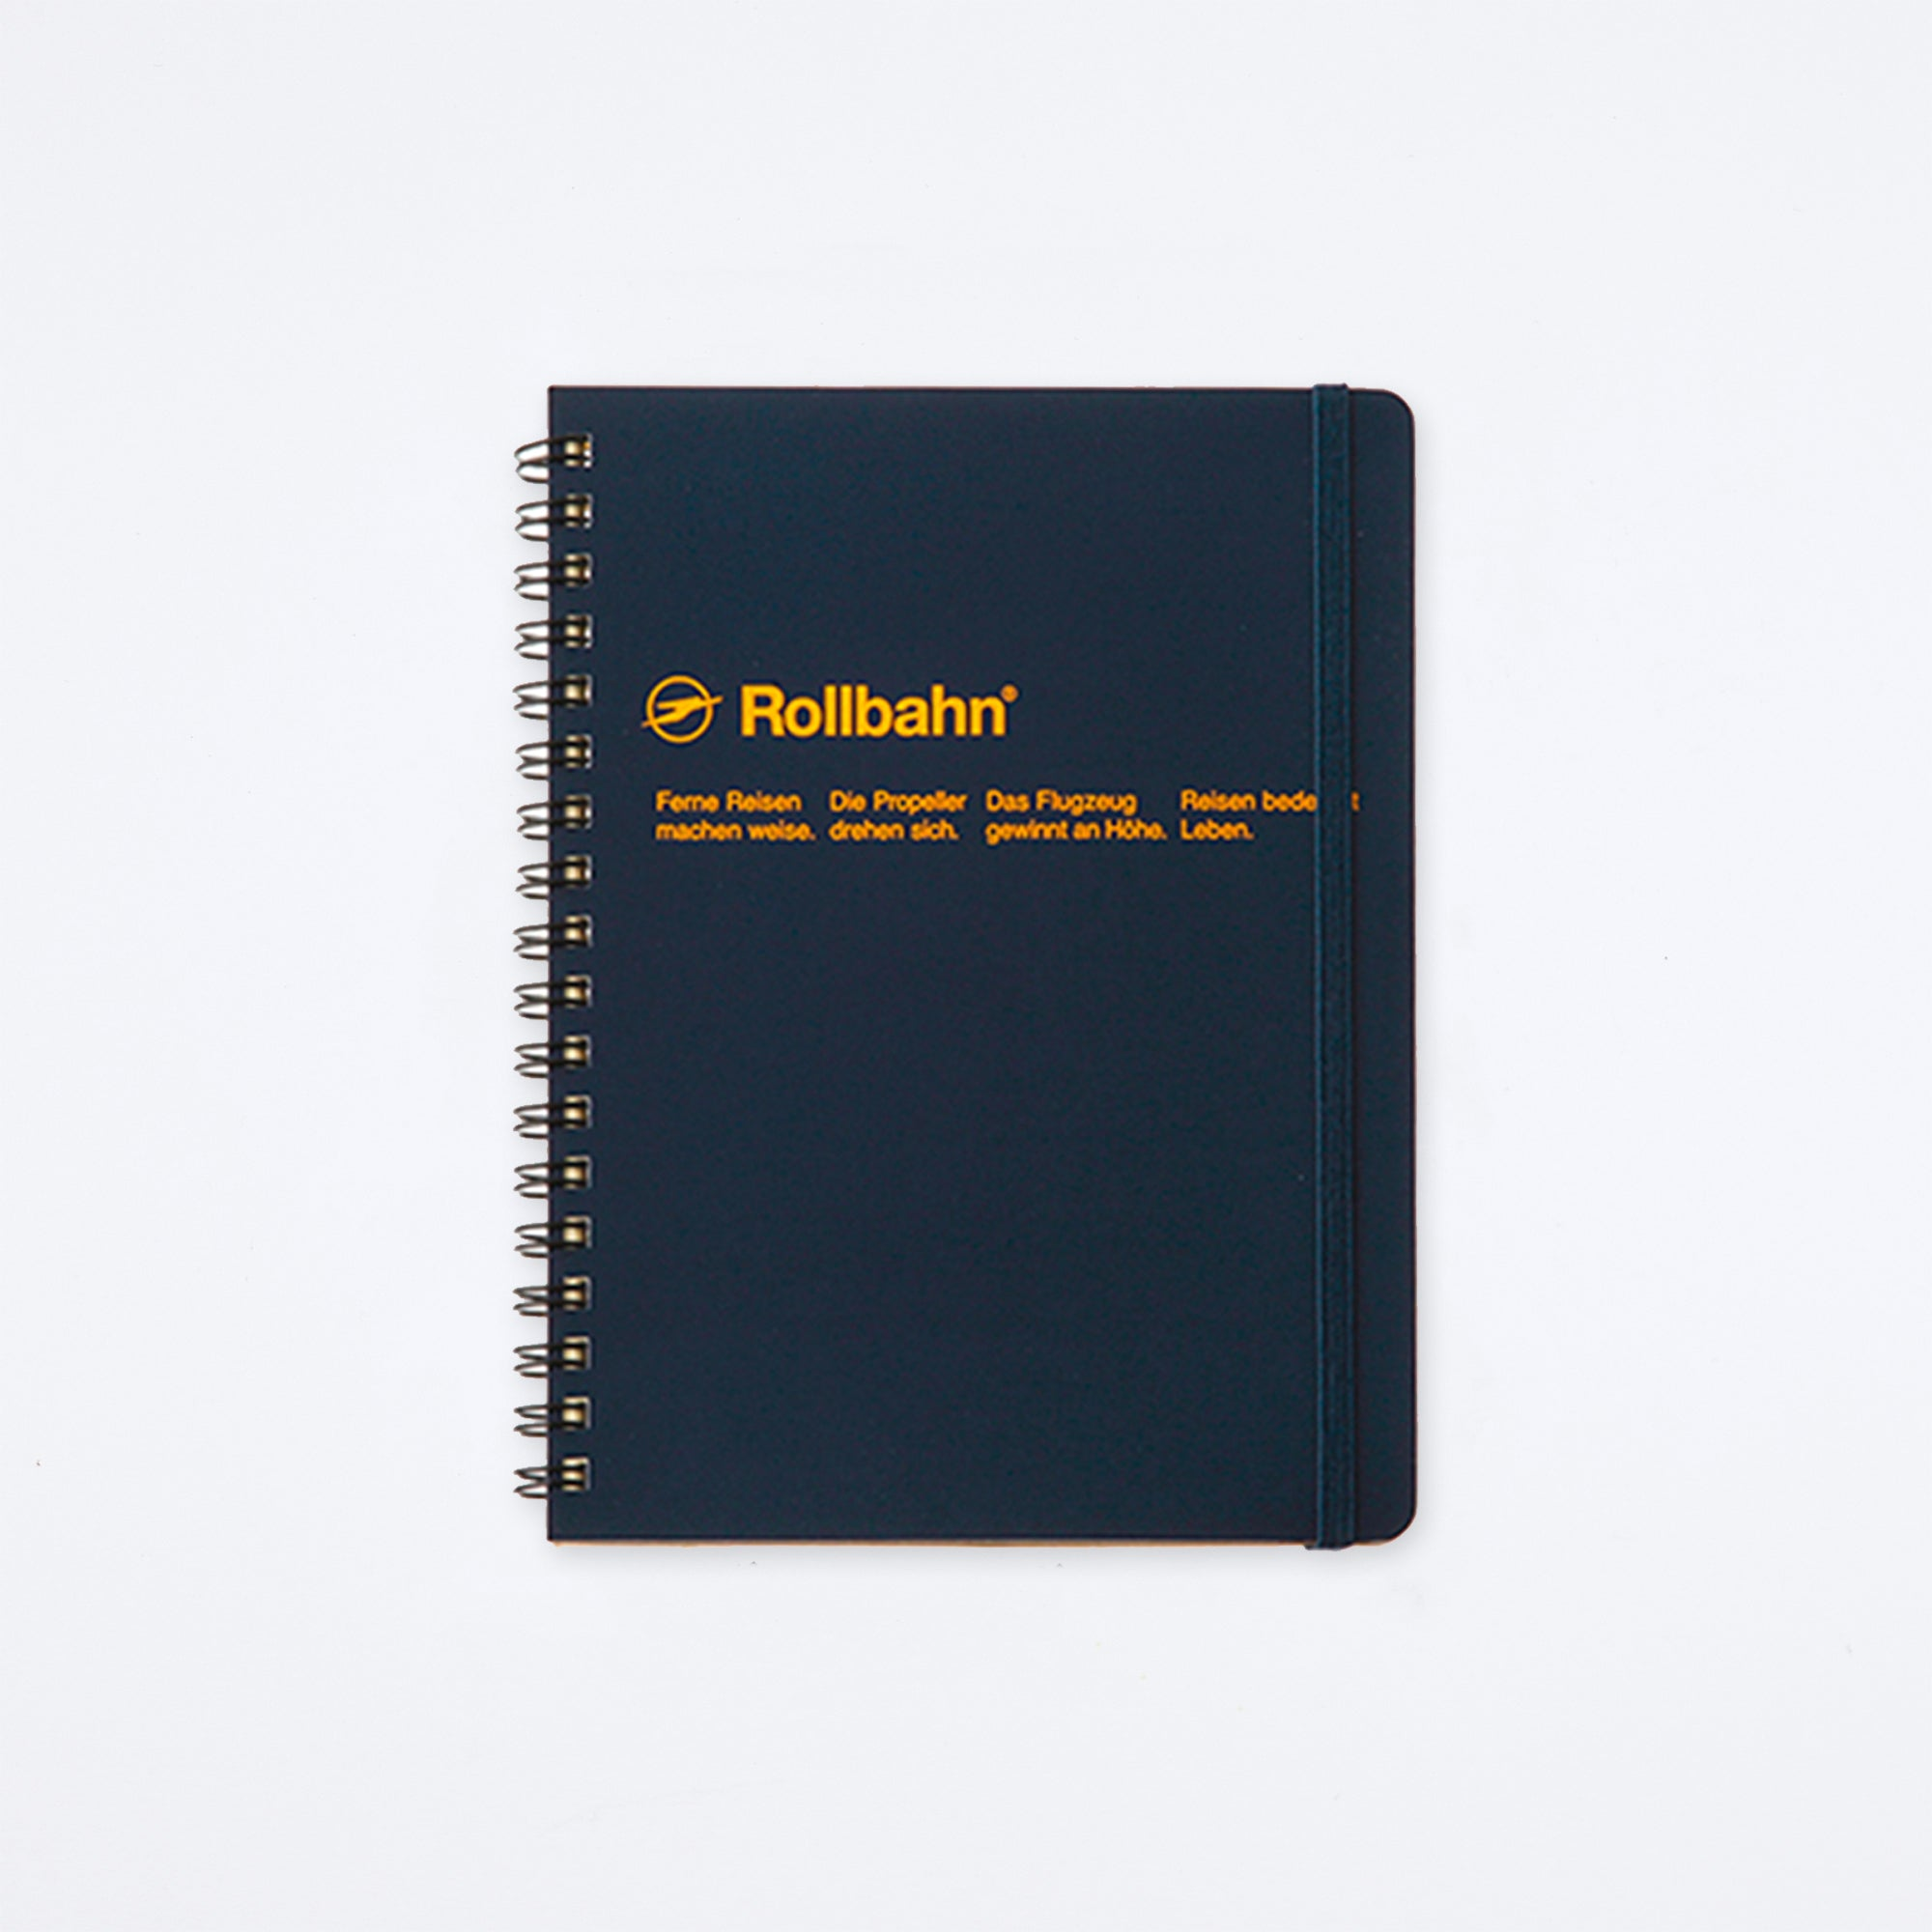 Rollbahn Spiral Large Notebook